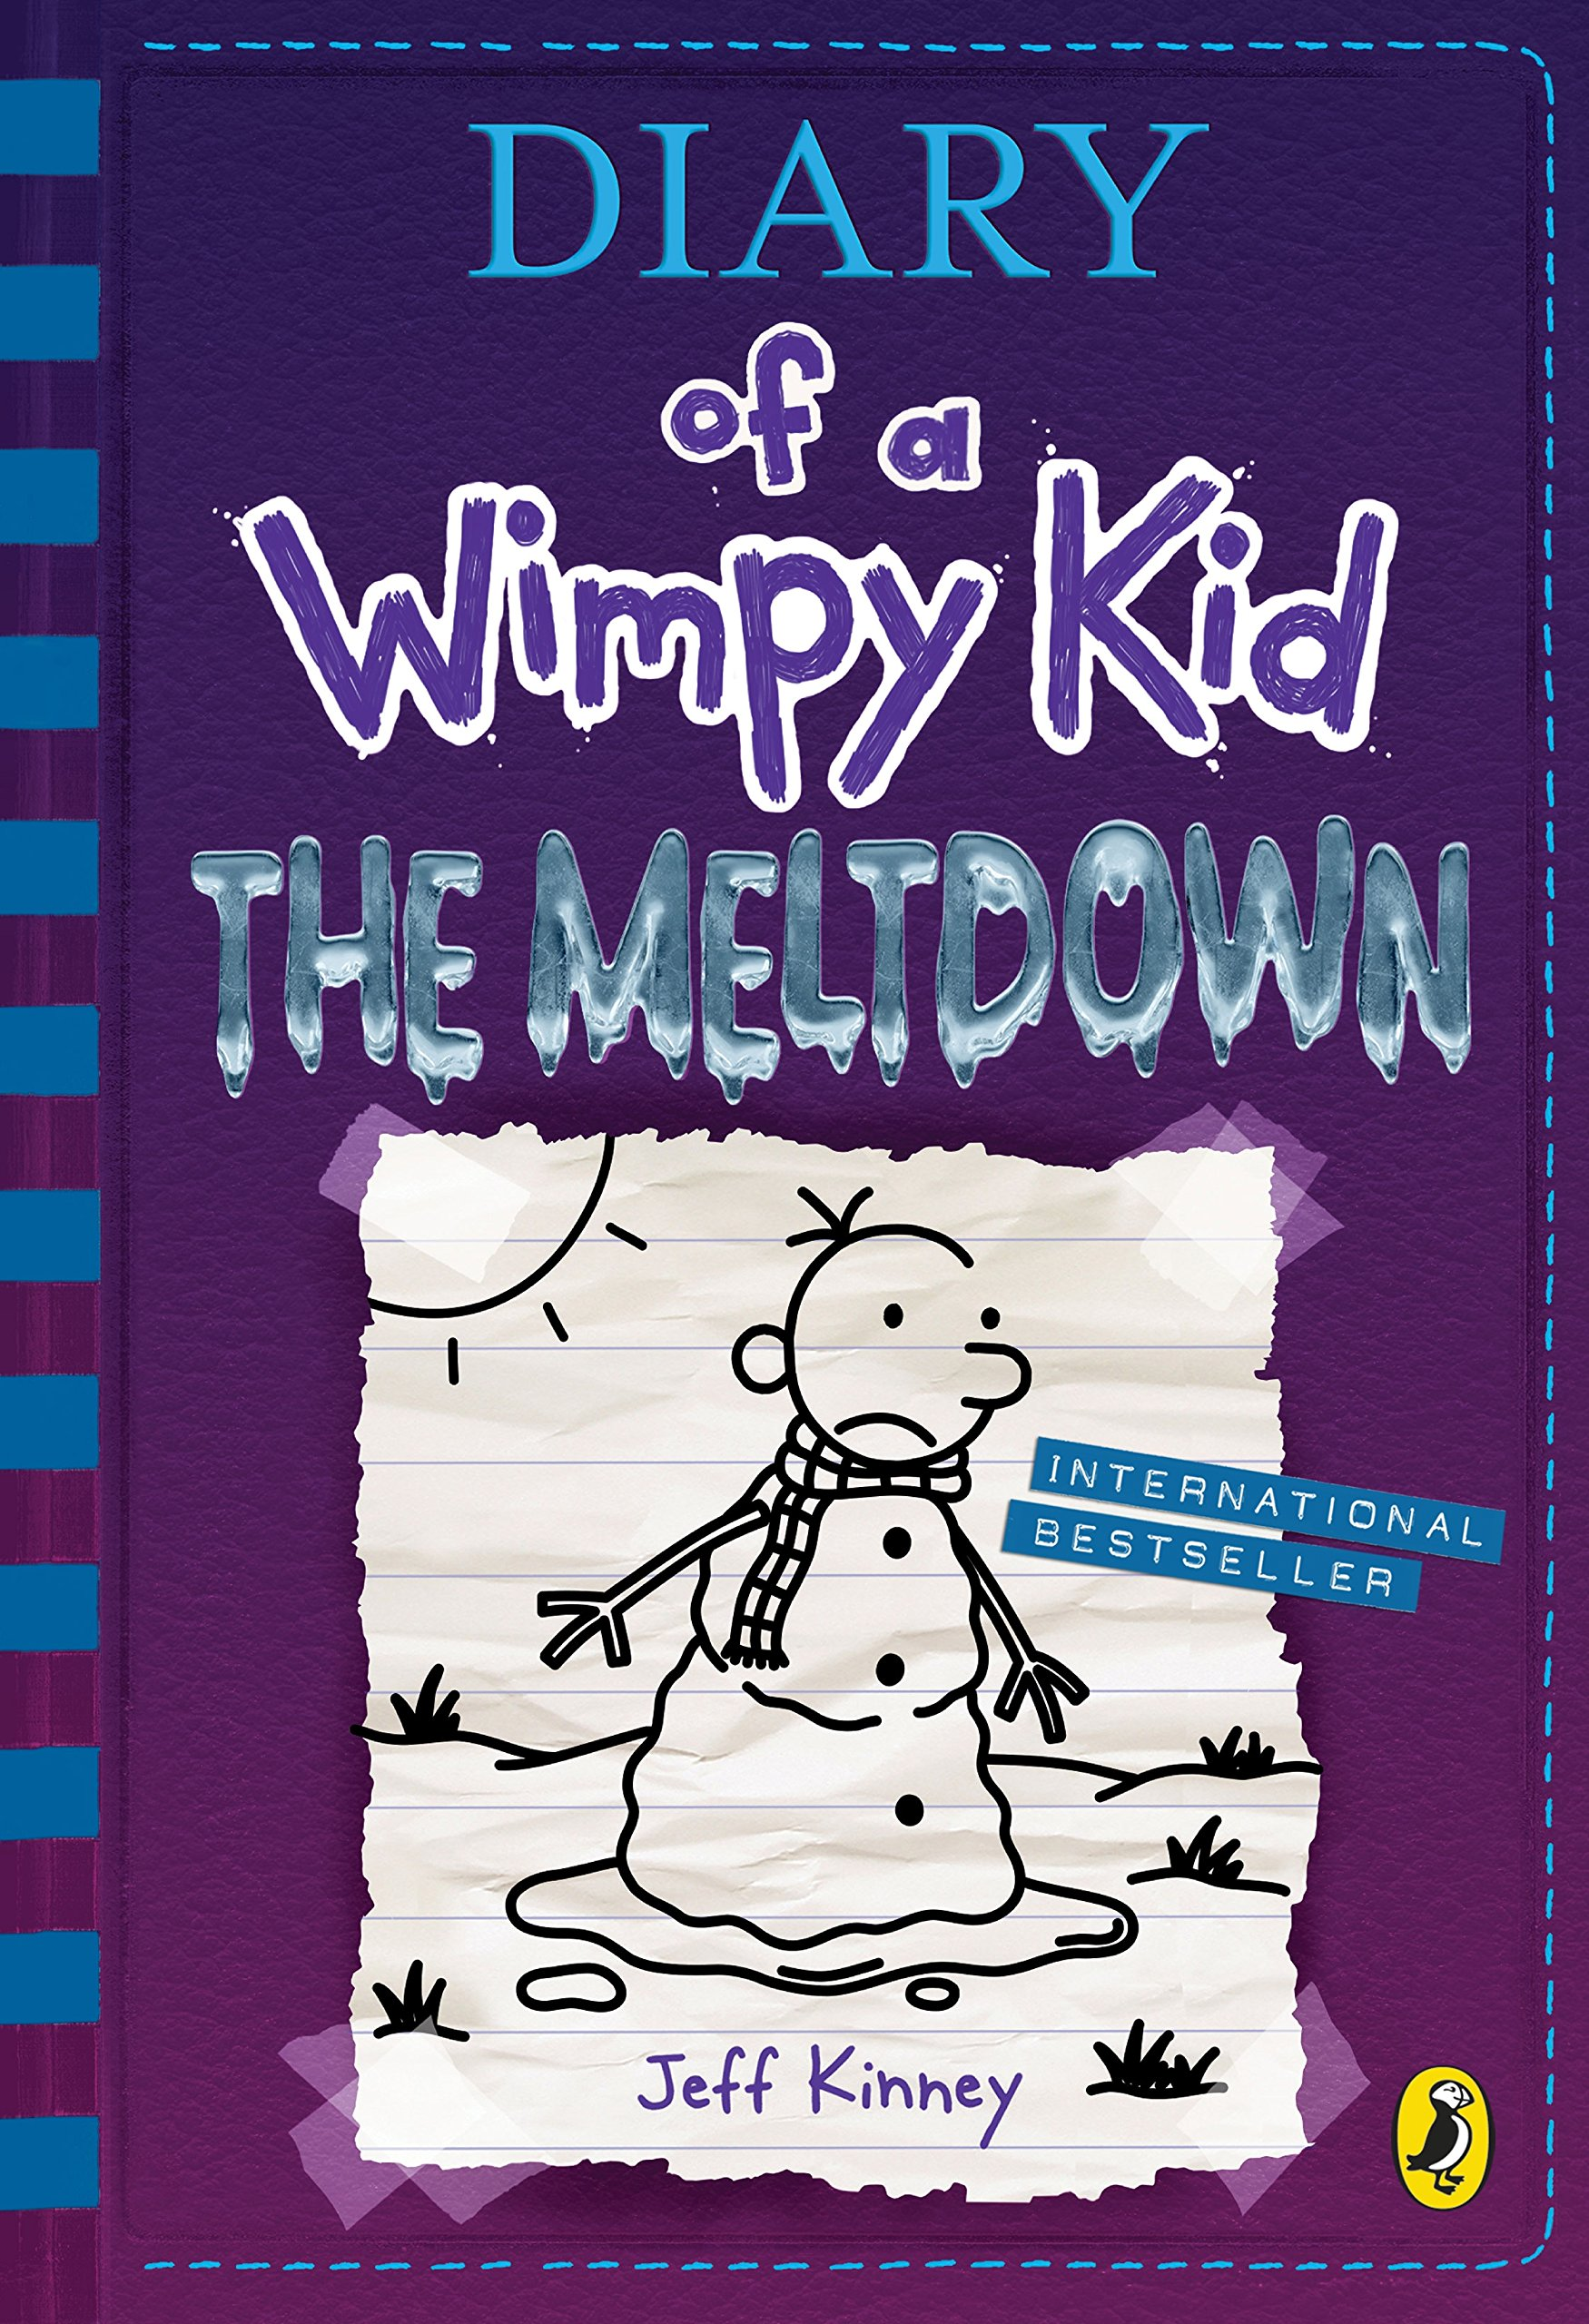 Diary of a Wimpy Kid ; The Meltdown